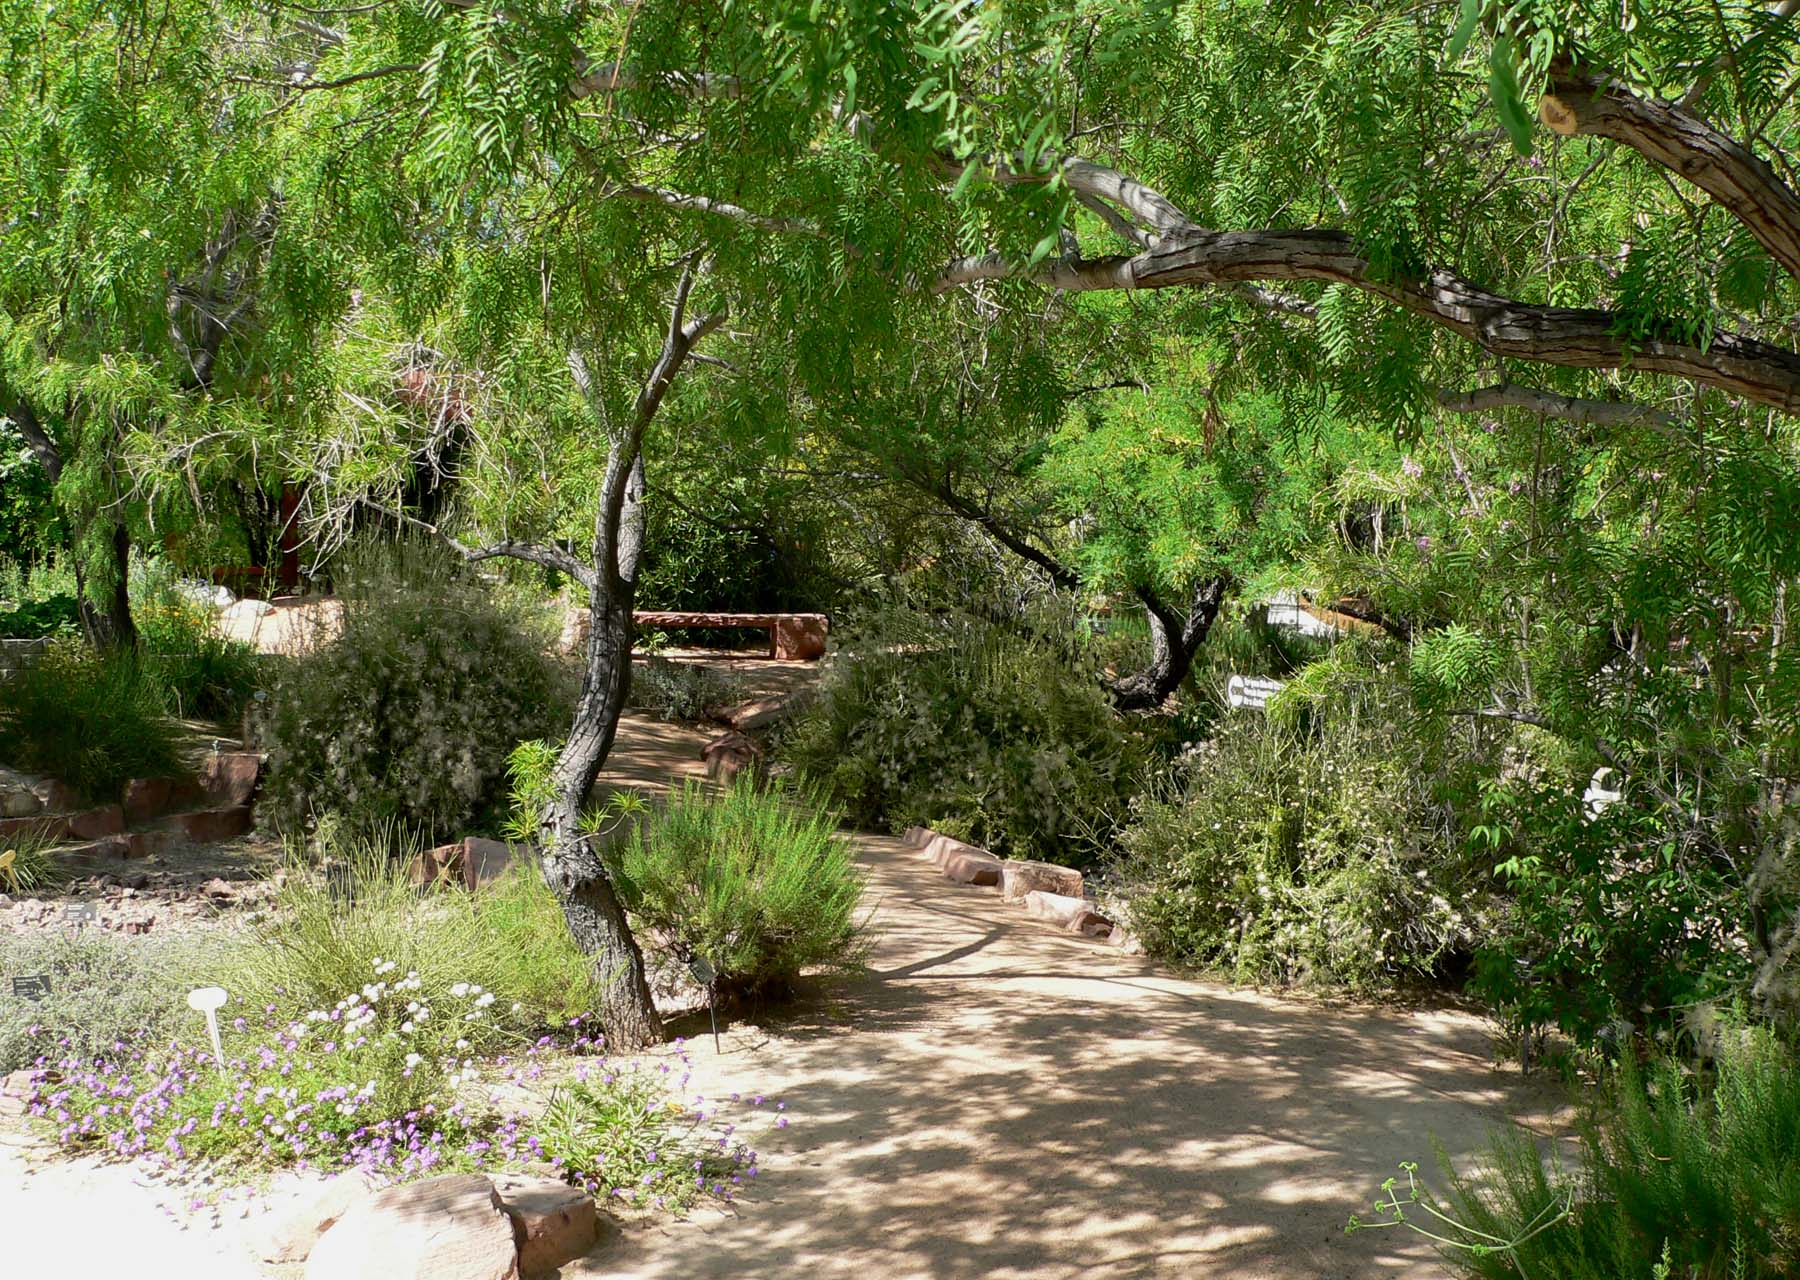 File:Springs Preserve Garden Path